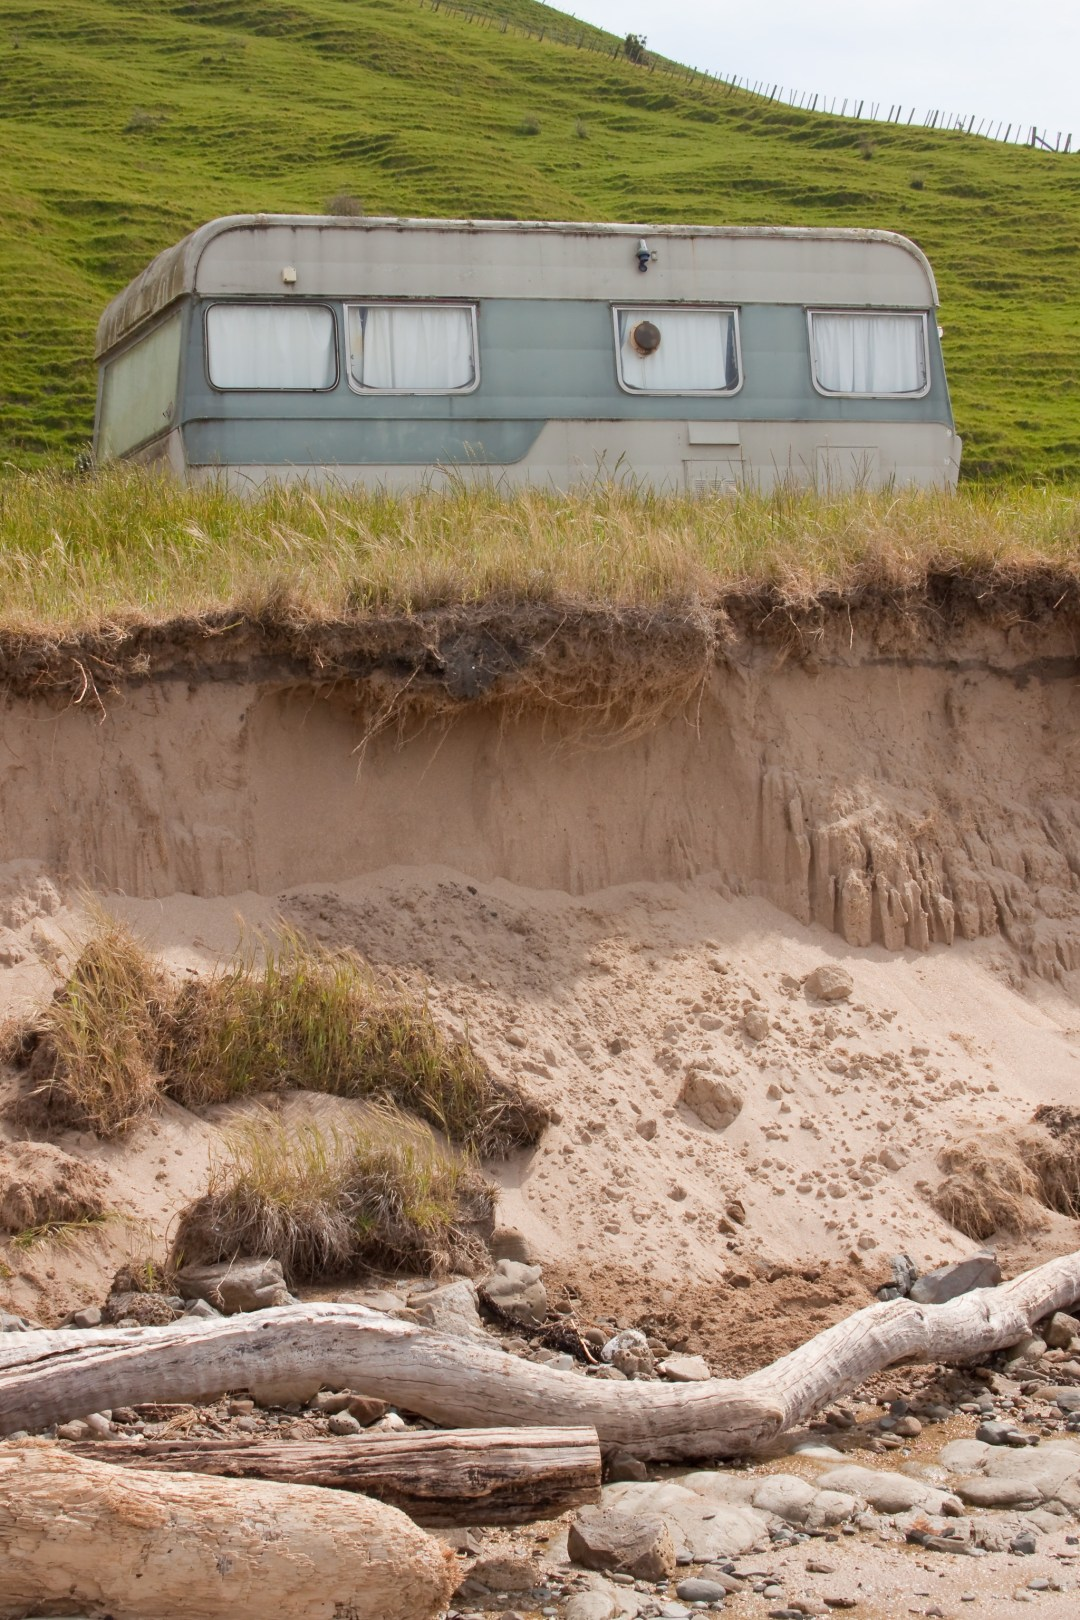 An eroded stretch of coast, with caravan parked.